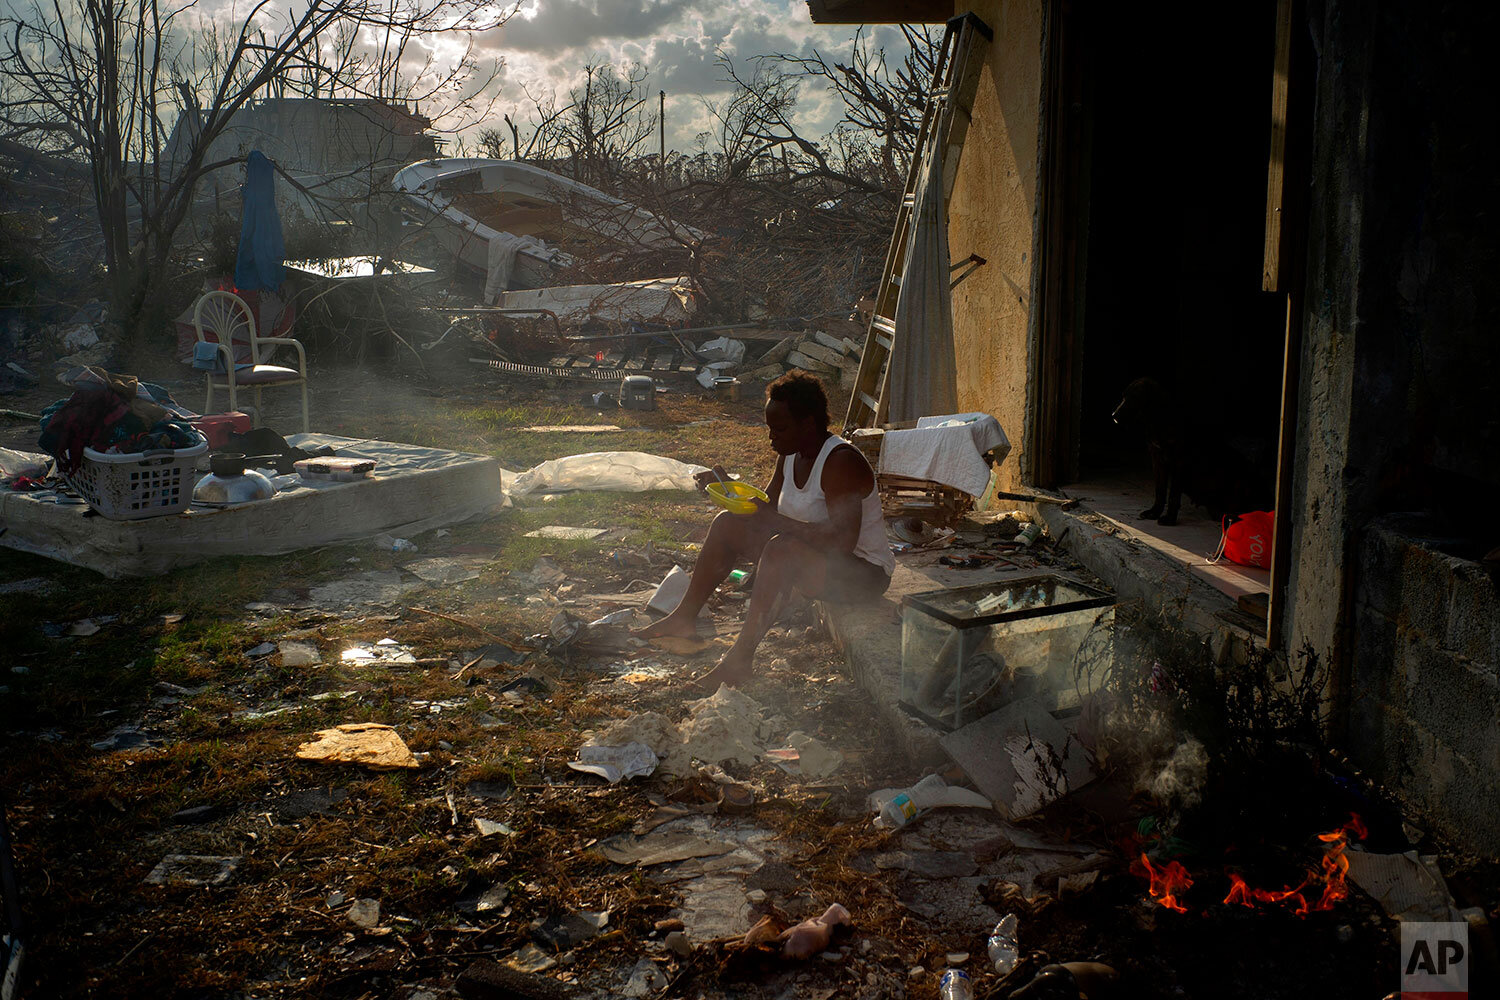 Tereha Davis, 45, eats a meal of rice as she sits among the remains of her shattered home, in the aftermath of Hurricane Dorian in McLean's Town, Grand Bahama, Bahamas, Wednesday Sept. 11, 2019.  (AP Photo/Ramon Espinosa)